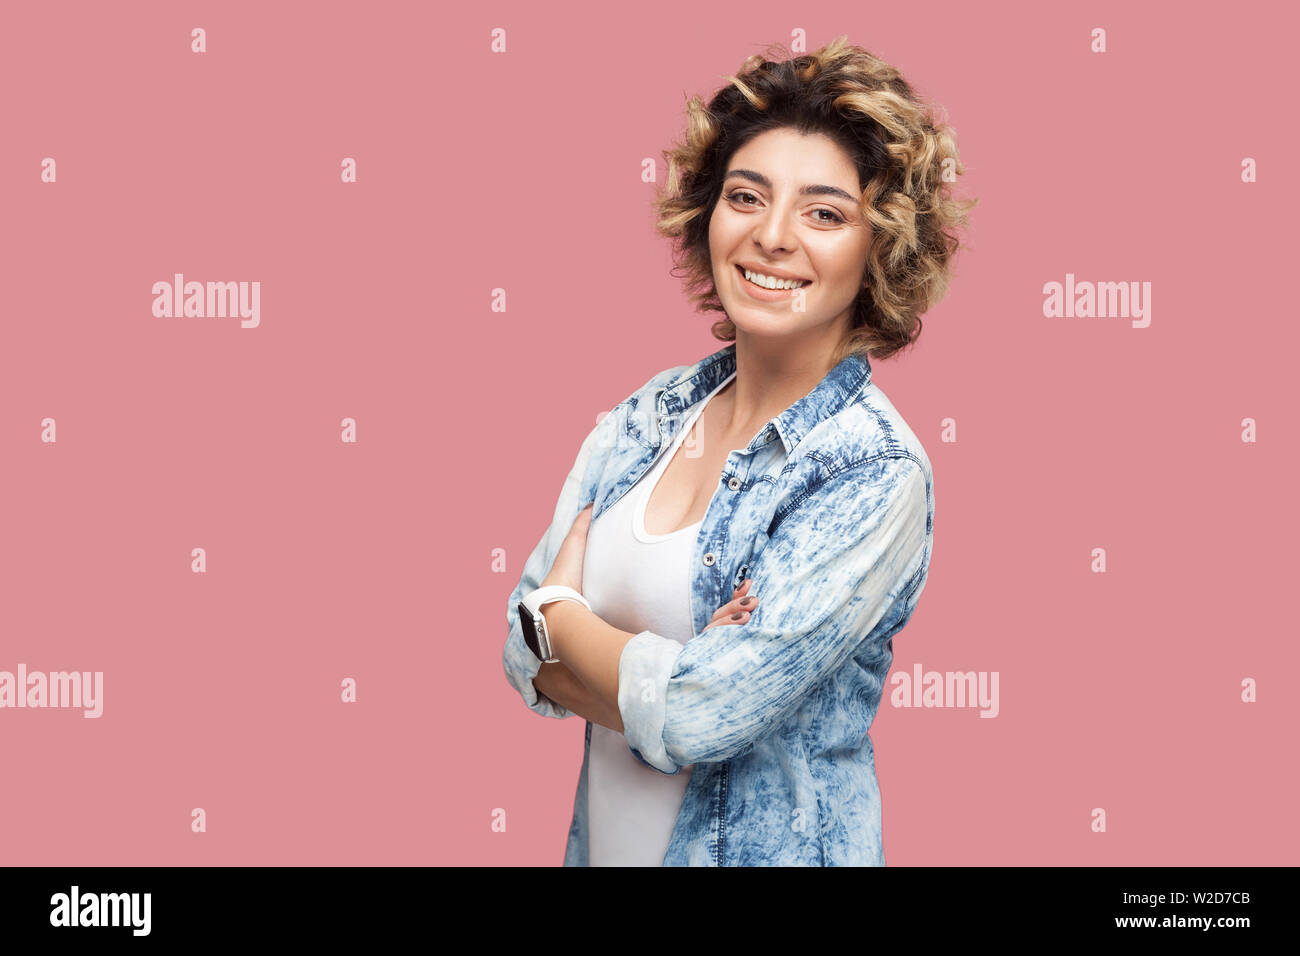 Portrait of beautiful successful happy young woman with curly hairstyle in casual blue shirt standing crossed arms and looking at camera, toothy smile Stock Photo